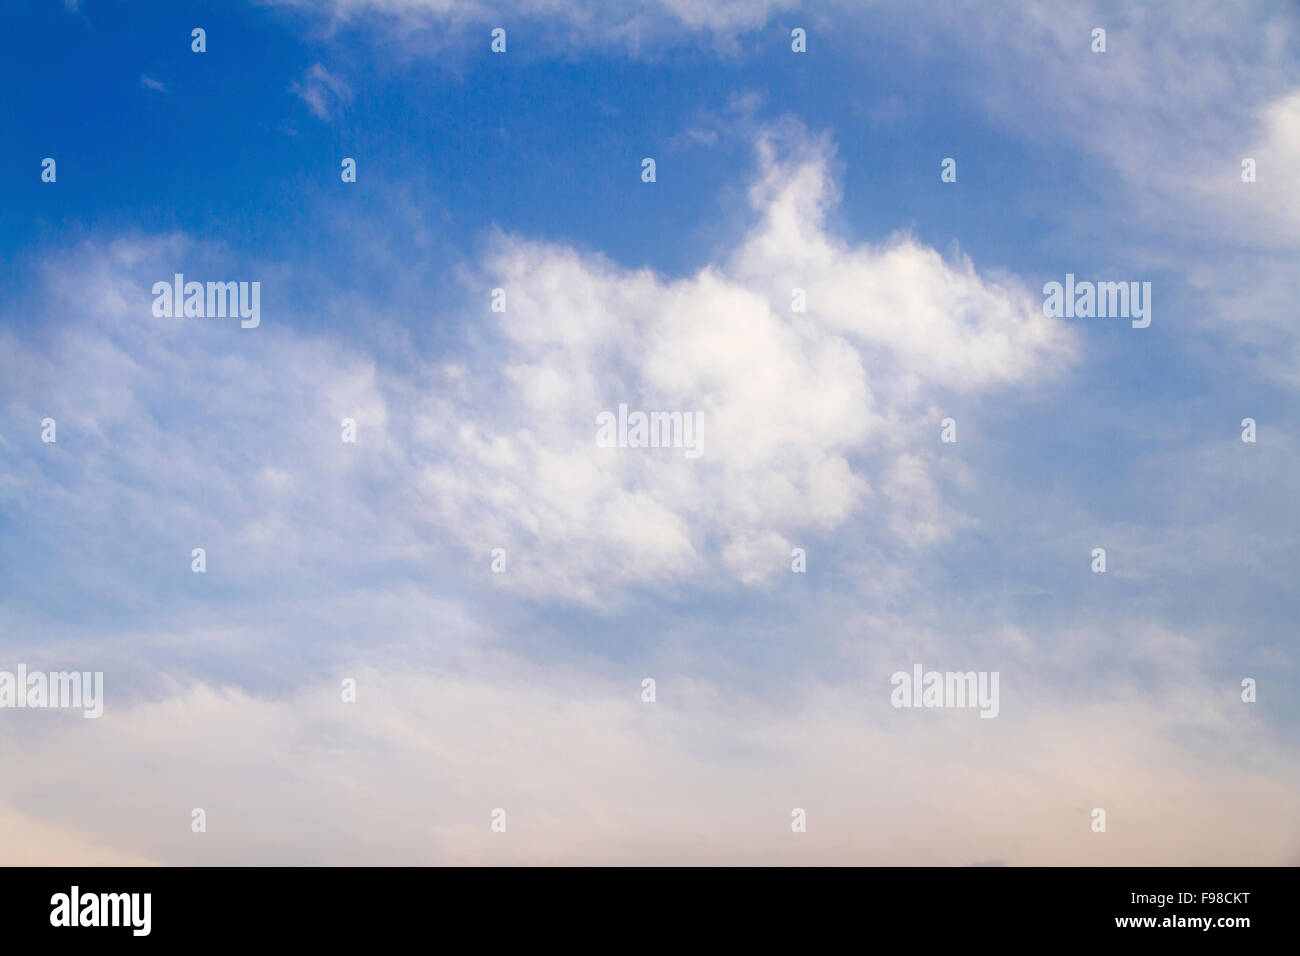 The view of dragon-like cloud in the sky. - Stock Image